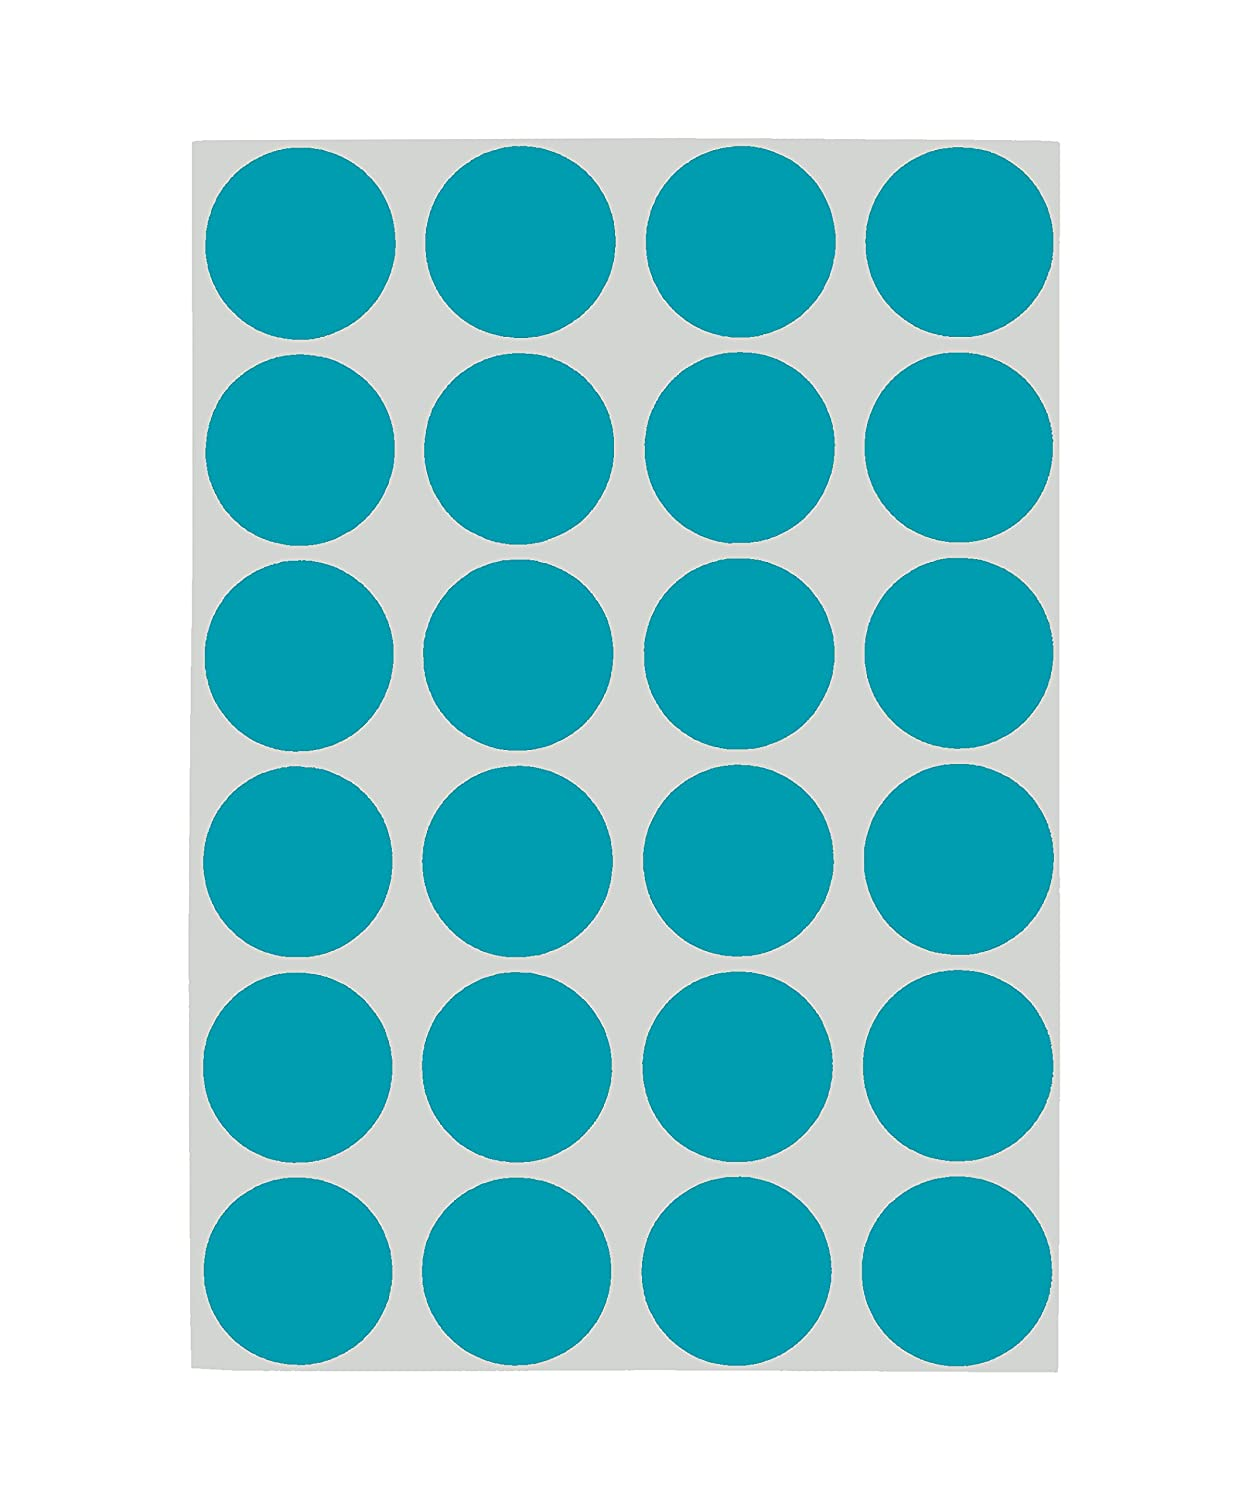 Amazon com chromalabel 3 4 inch removable color code dot labels on sheets 1 008 pack teal office products